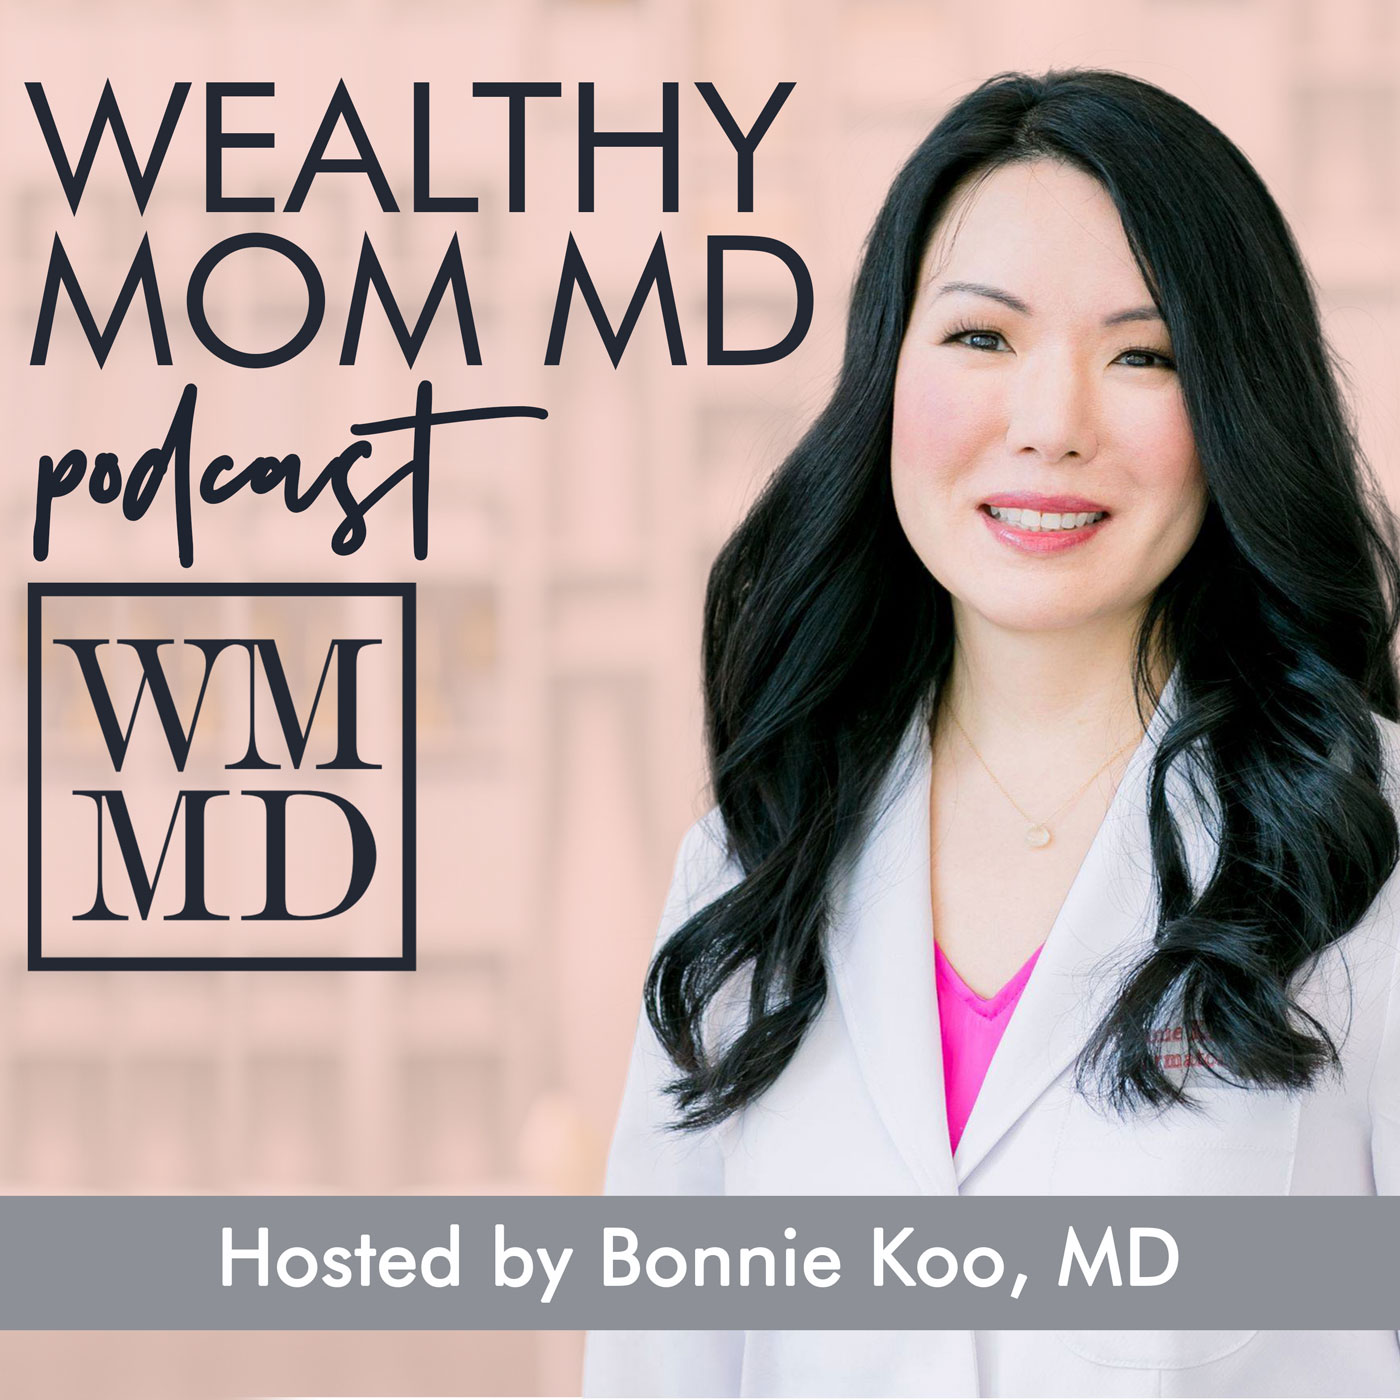 Wealthy Mom MD Podcast show art